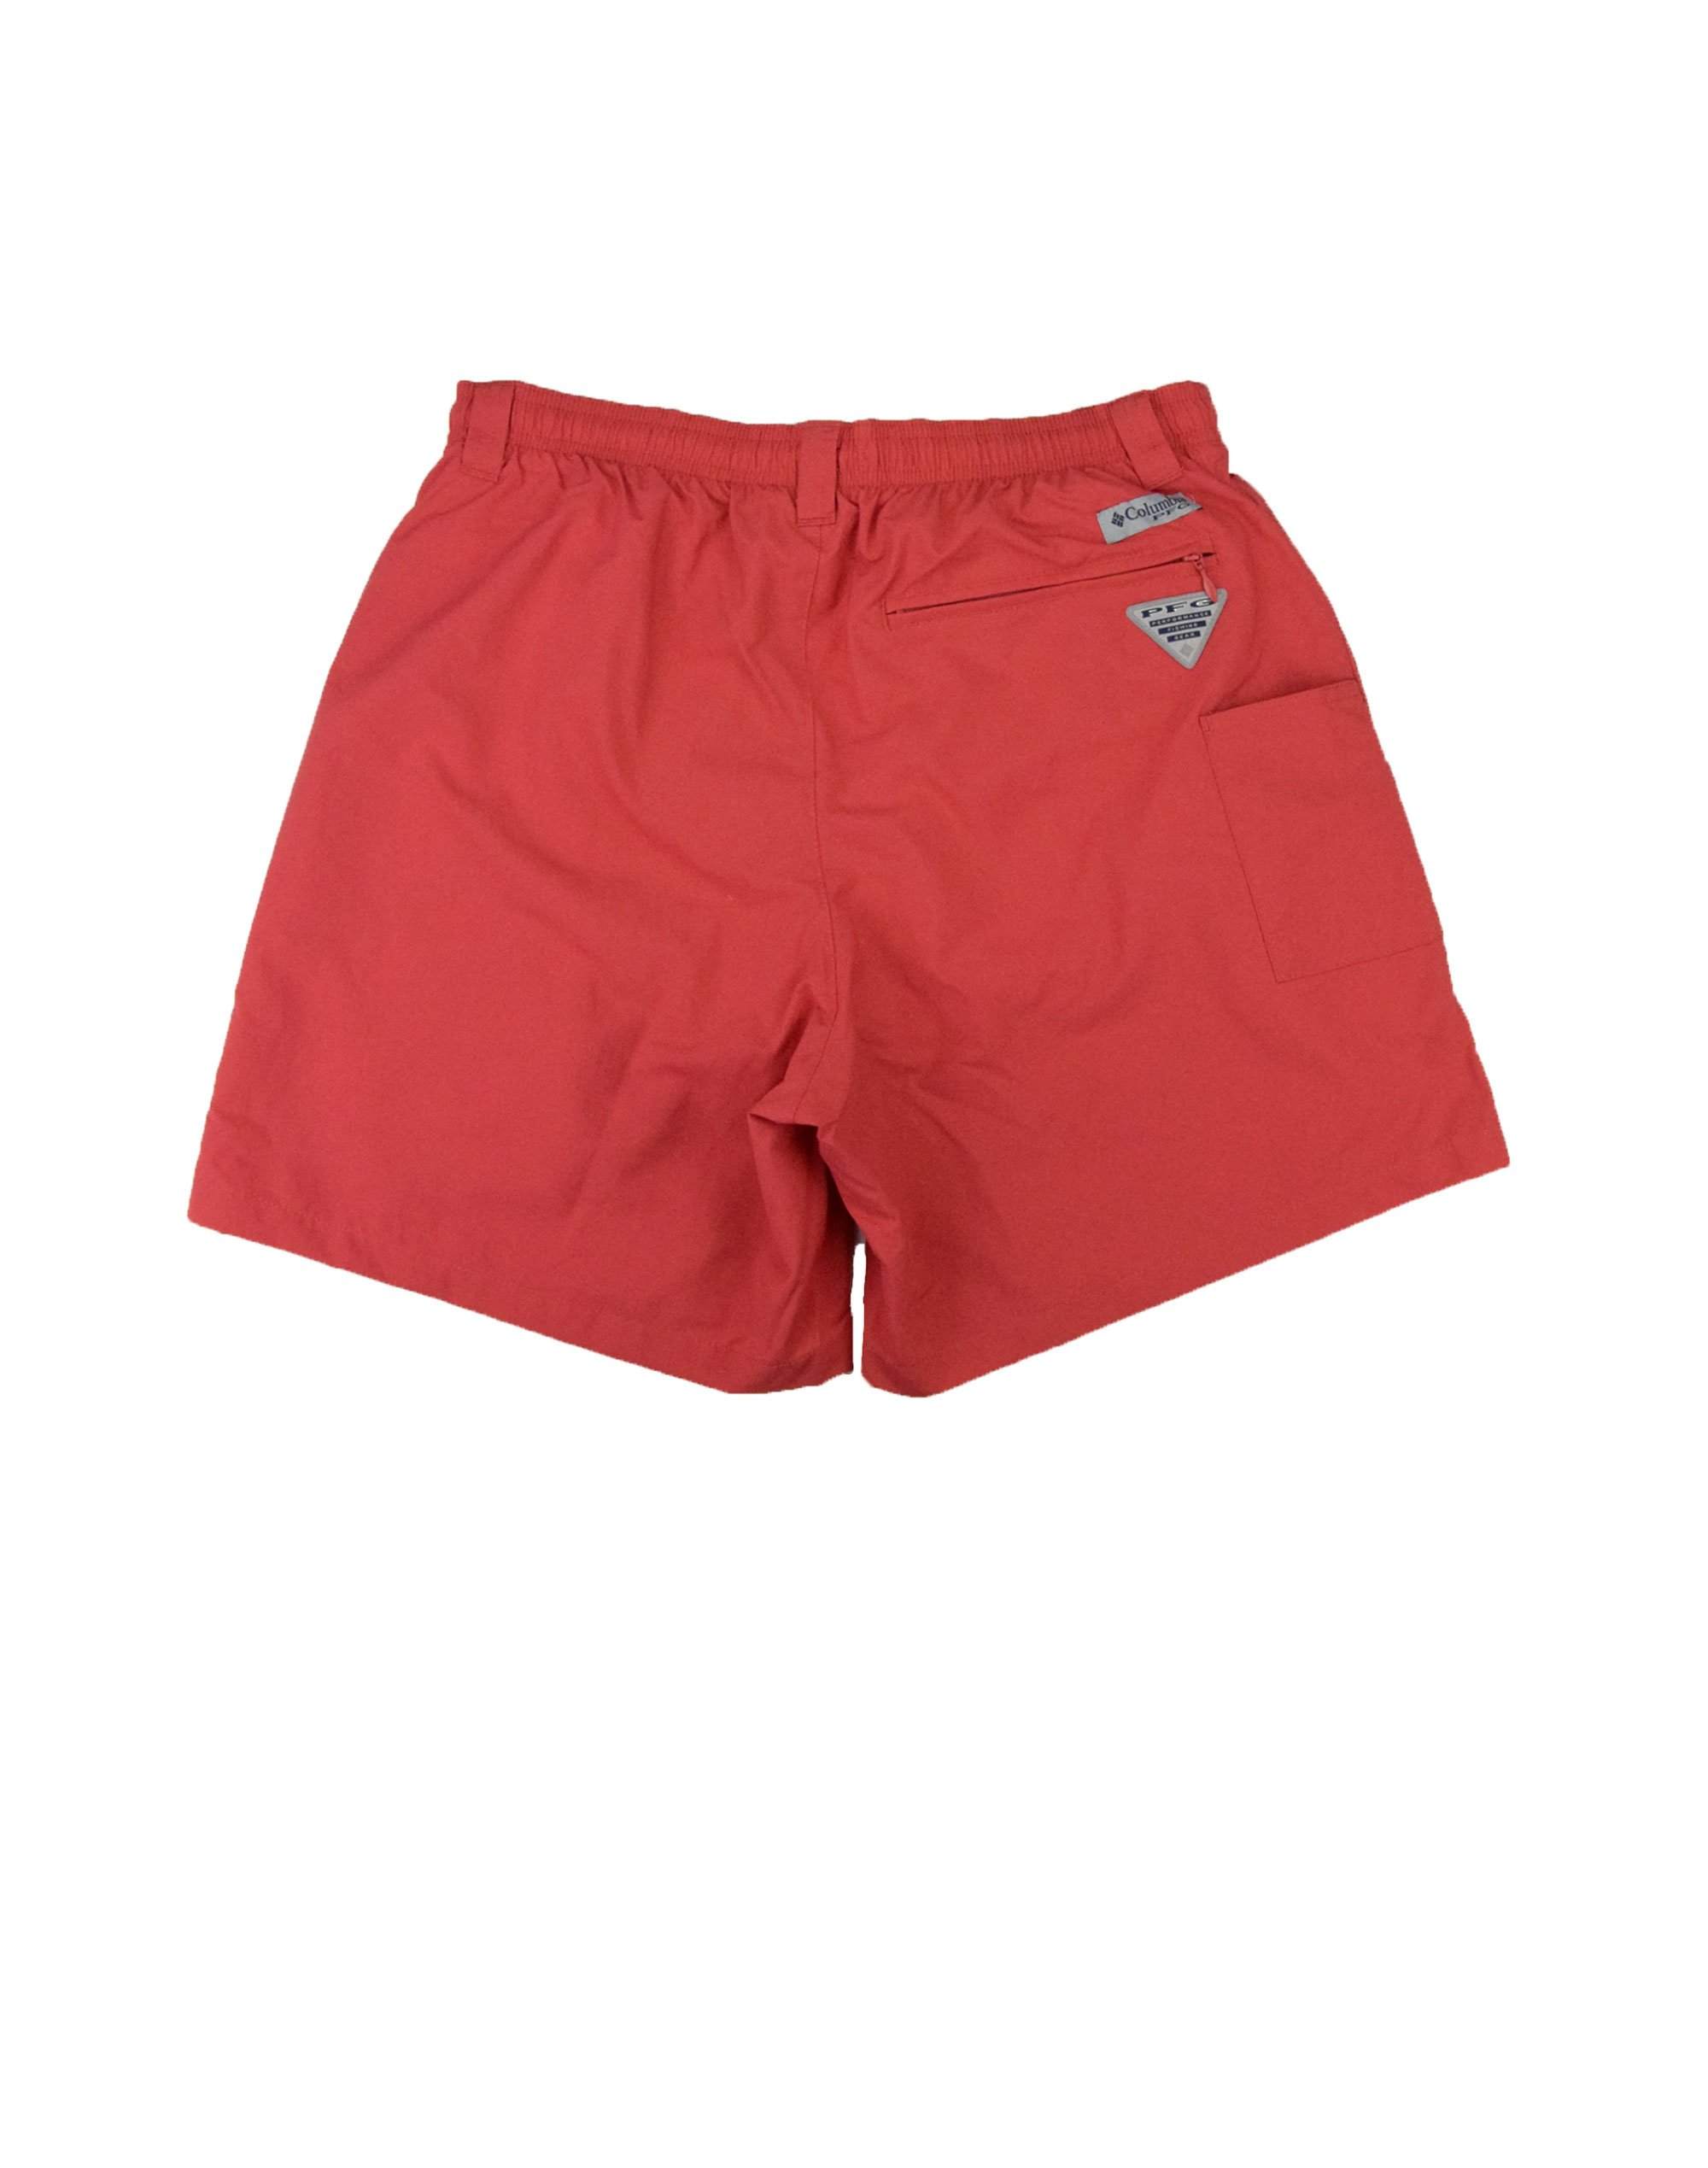 Columbia Backcast III Water Short (FM4009-683) Red